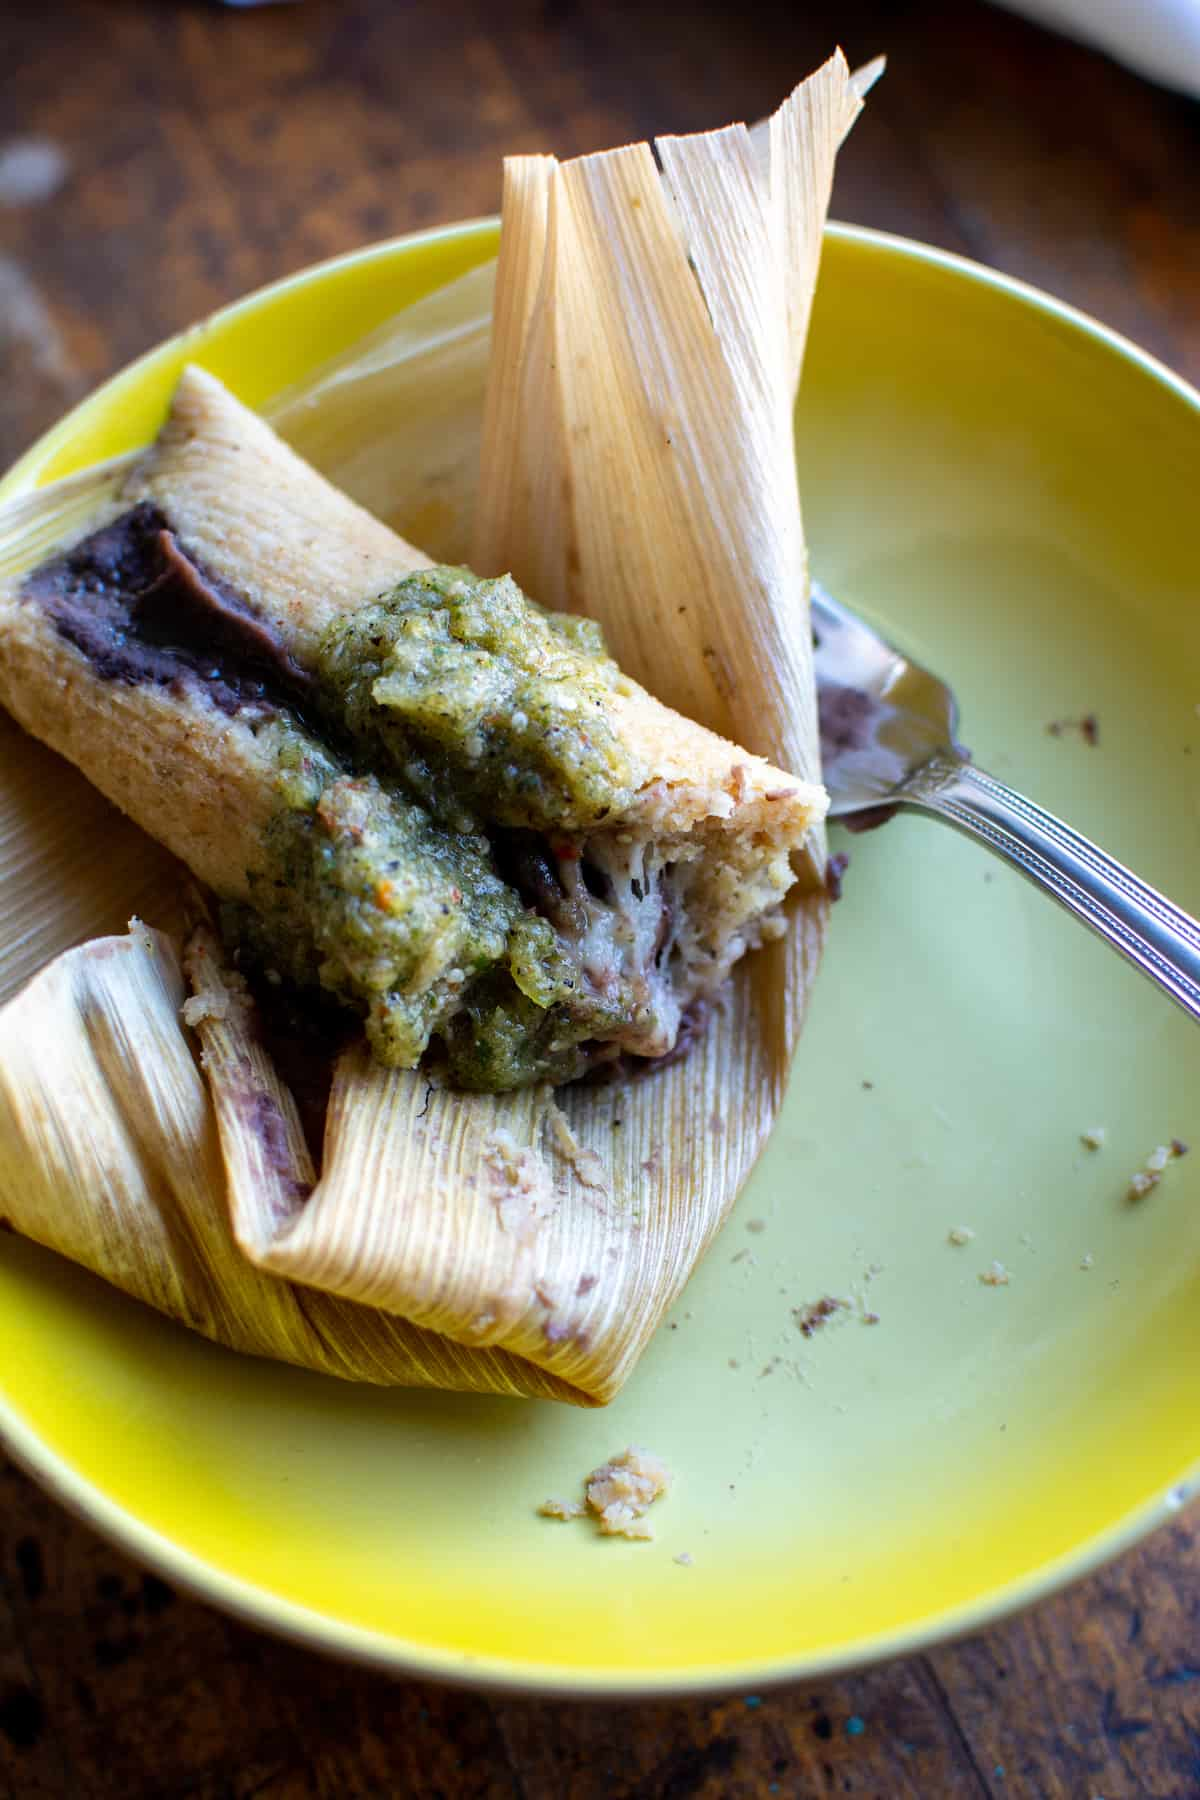 A black bean and cheese tamal sitting on a yellow plate that has been half eaten there is a fork sitting to one side.